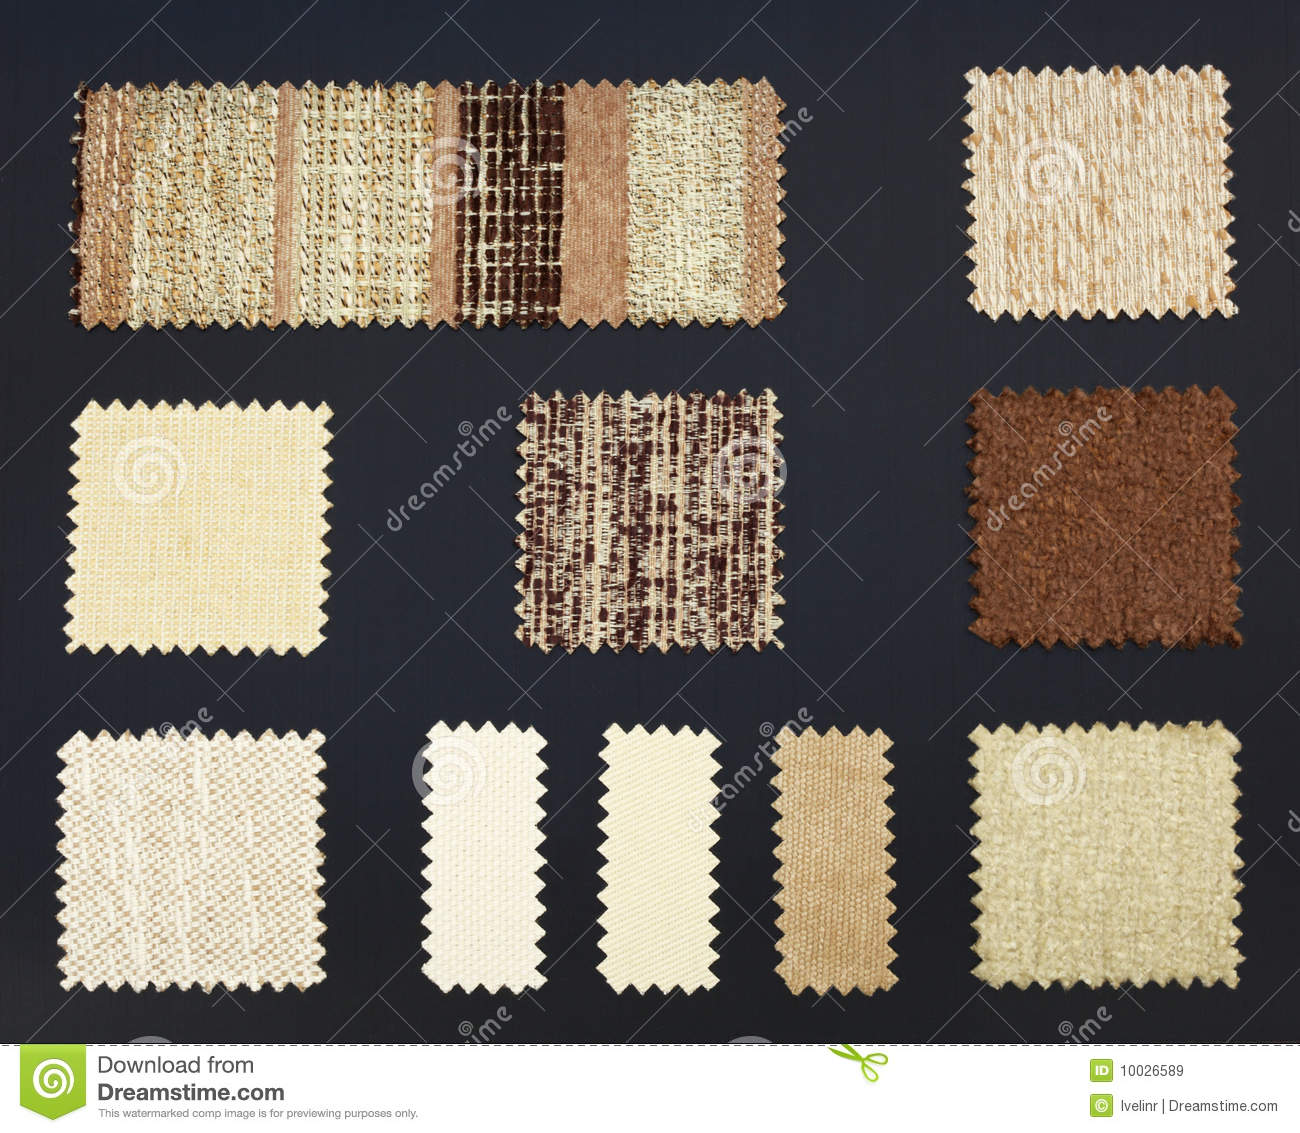 HD wallpapers free fabric samples for interior designers